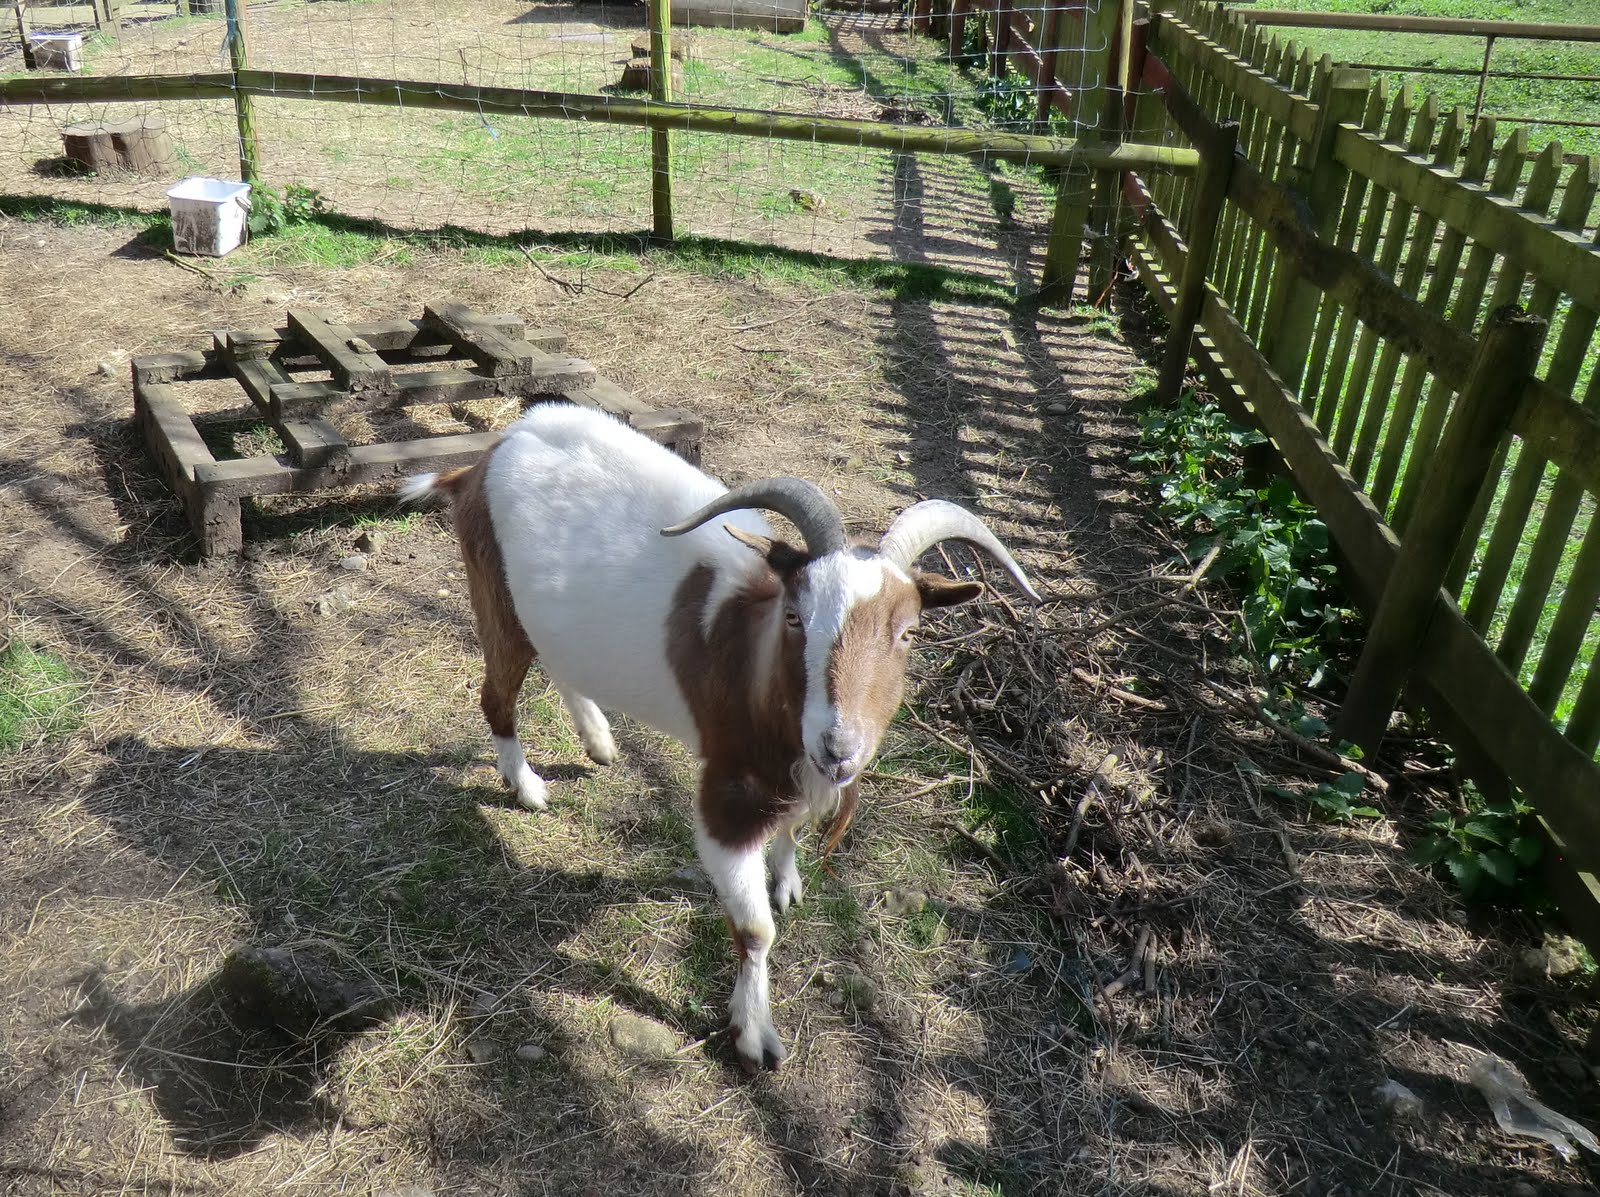 CIMG7600 Friendly goat at Chelsham Court Farm